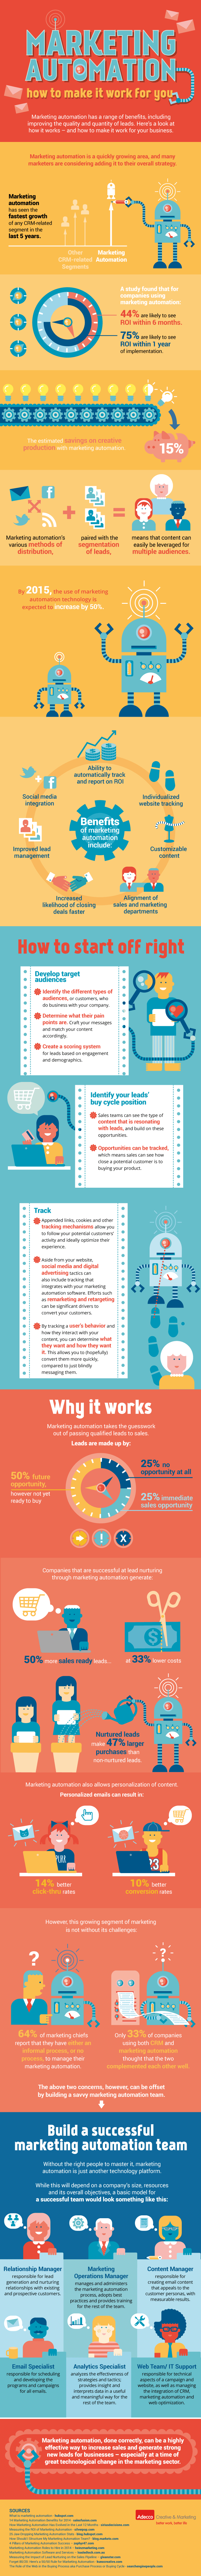 How to Make Marketing Automation Work for You - infographic